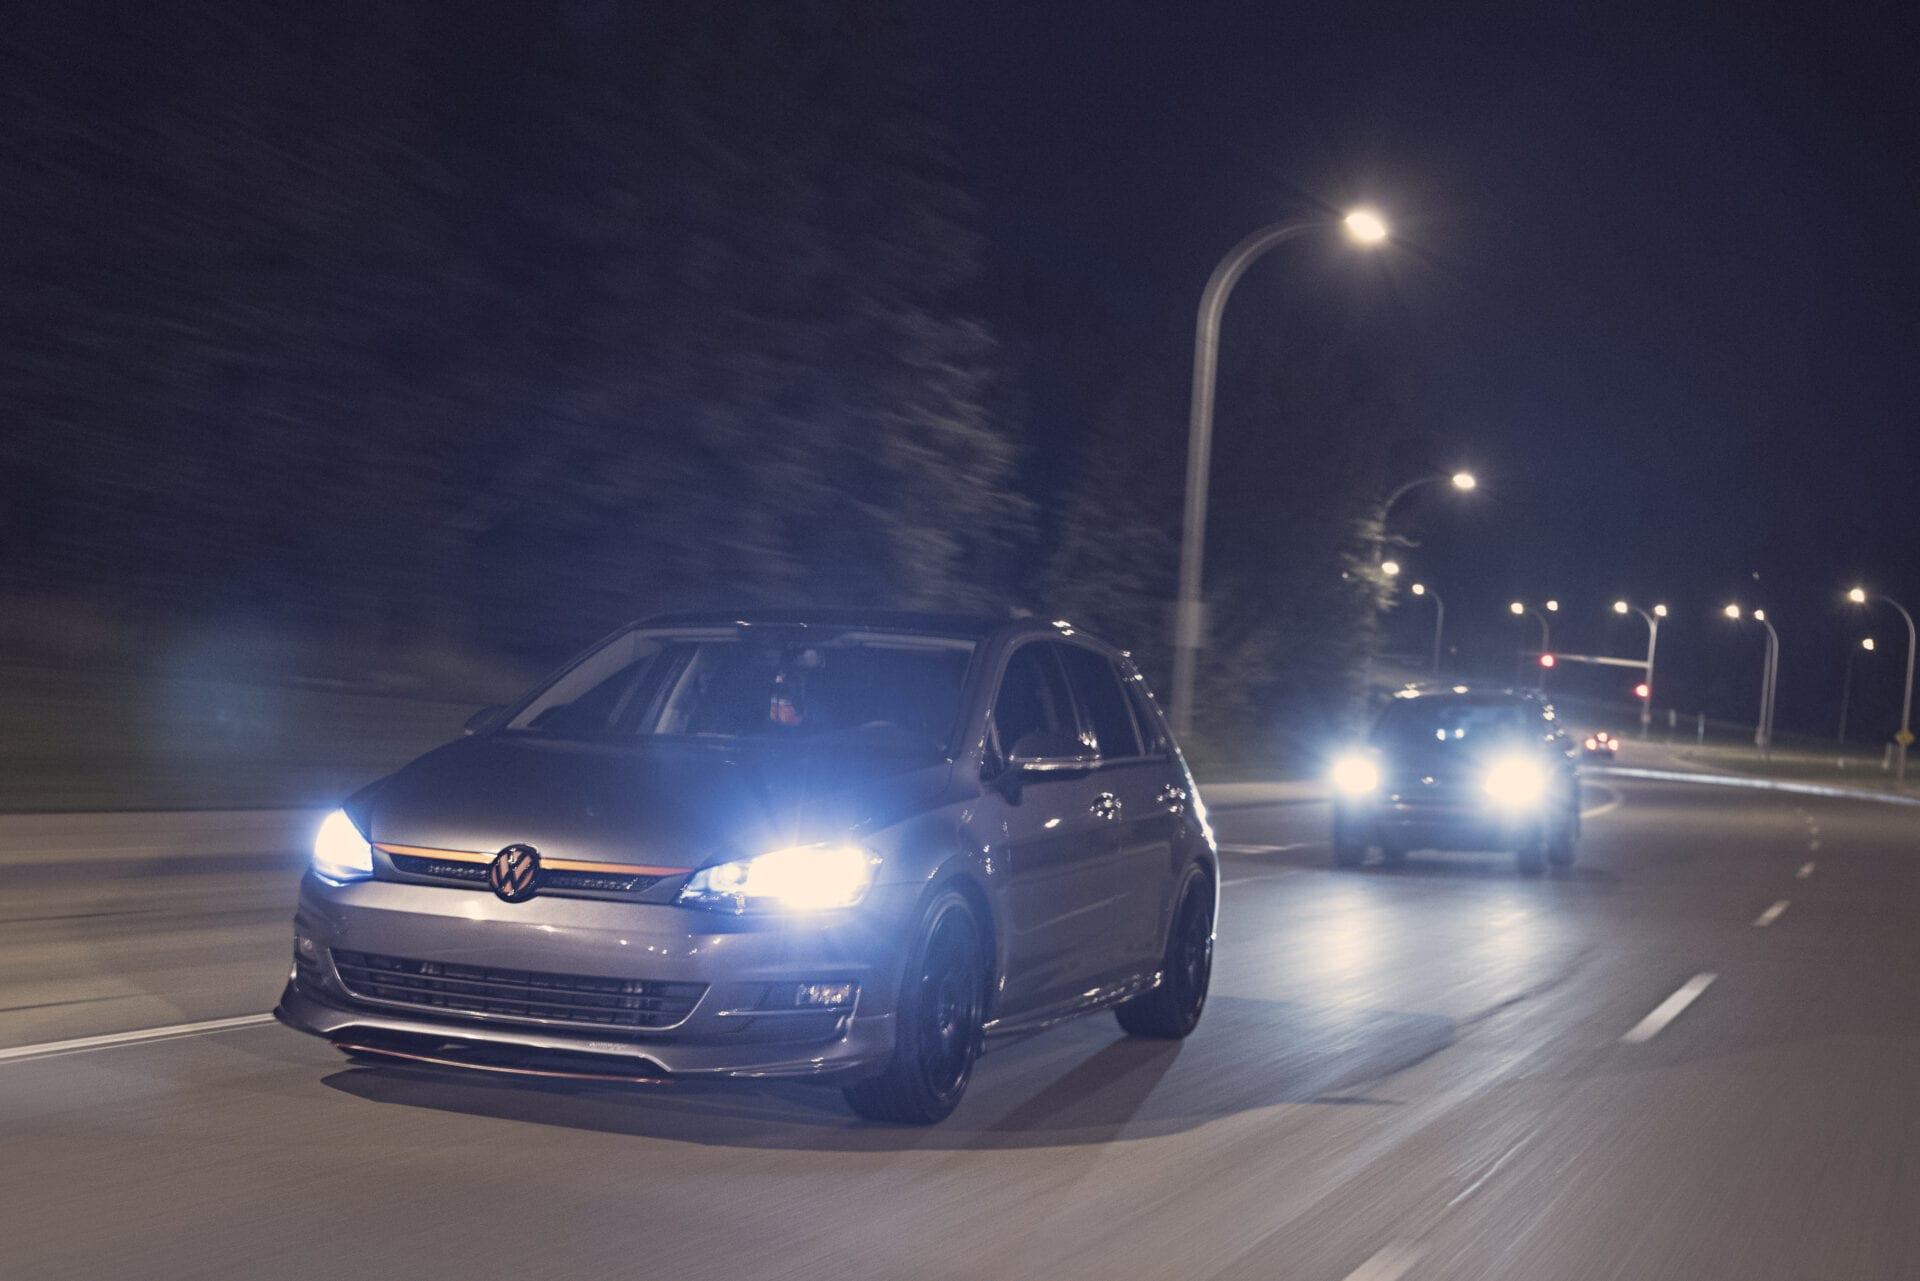 VW Golf driving under a bridge at fox drive in Edmonton at night